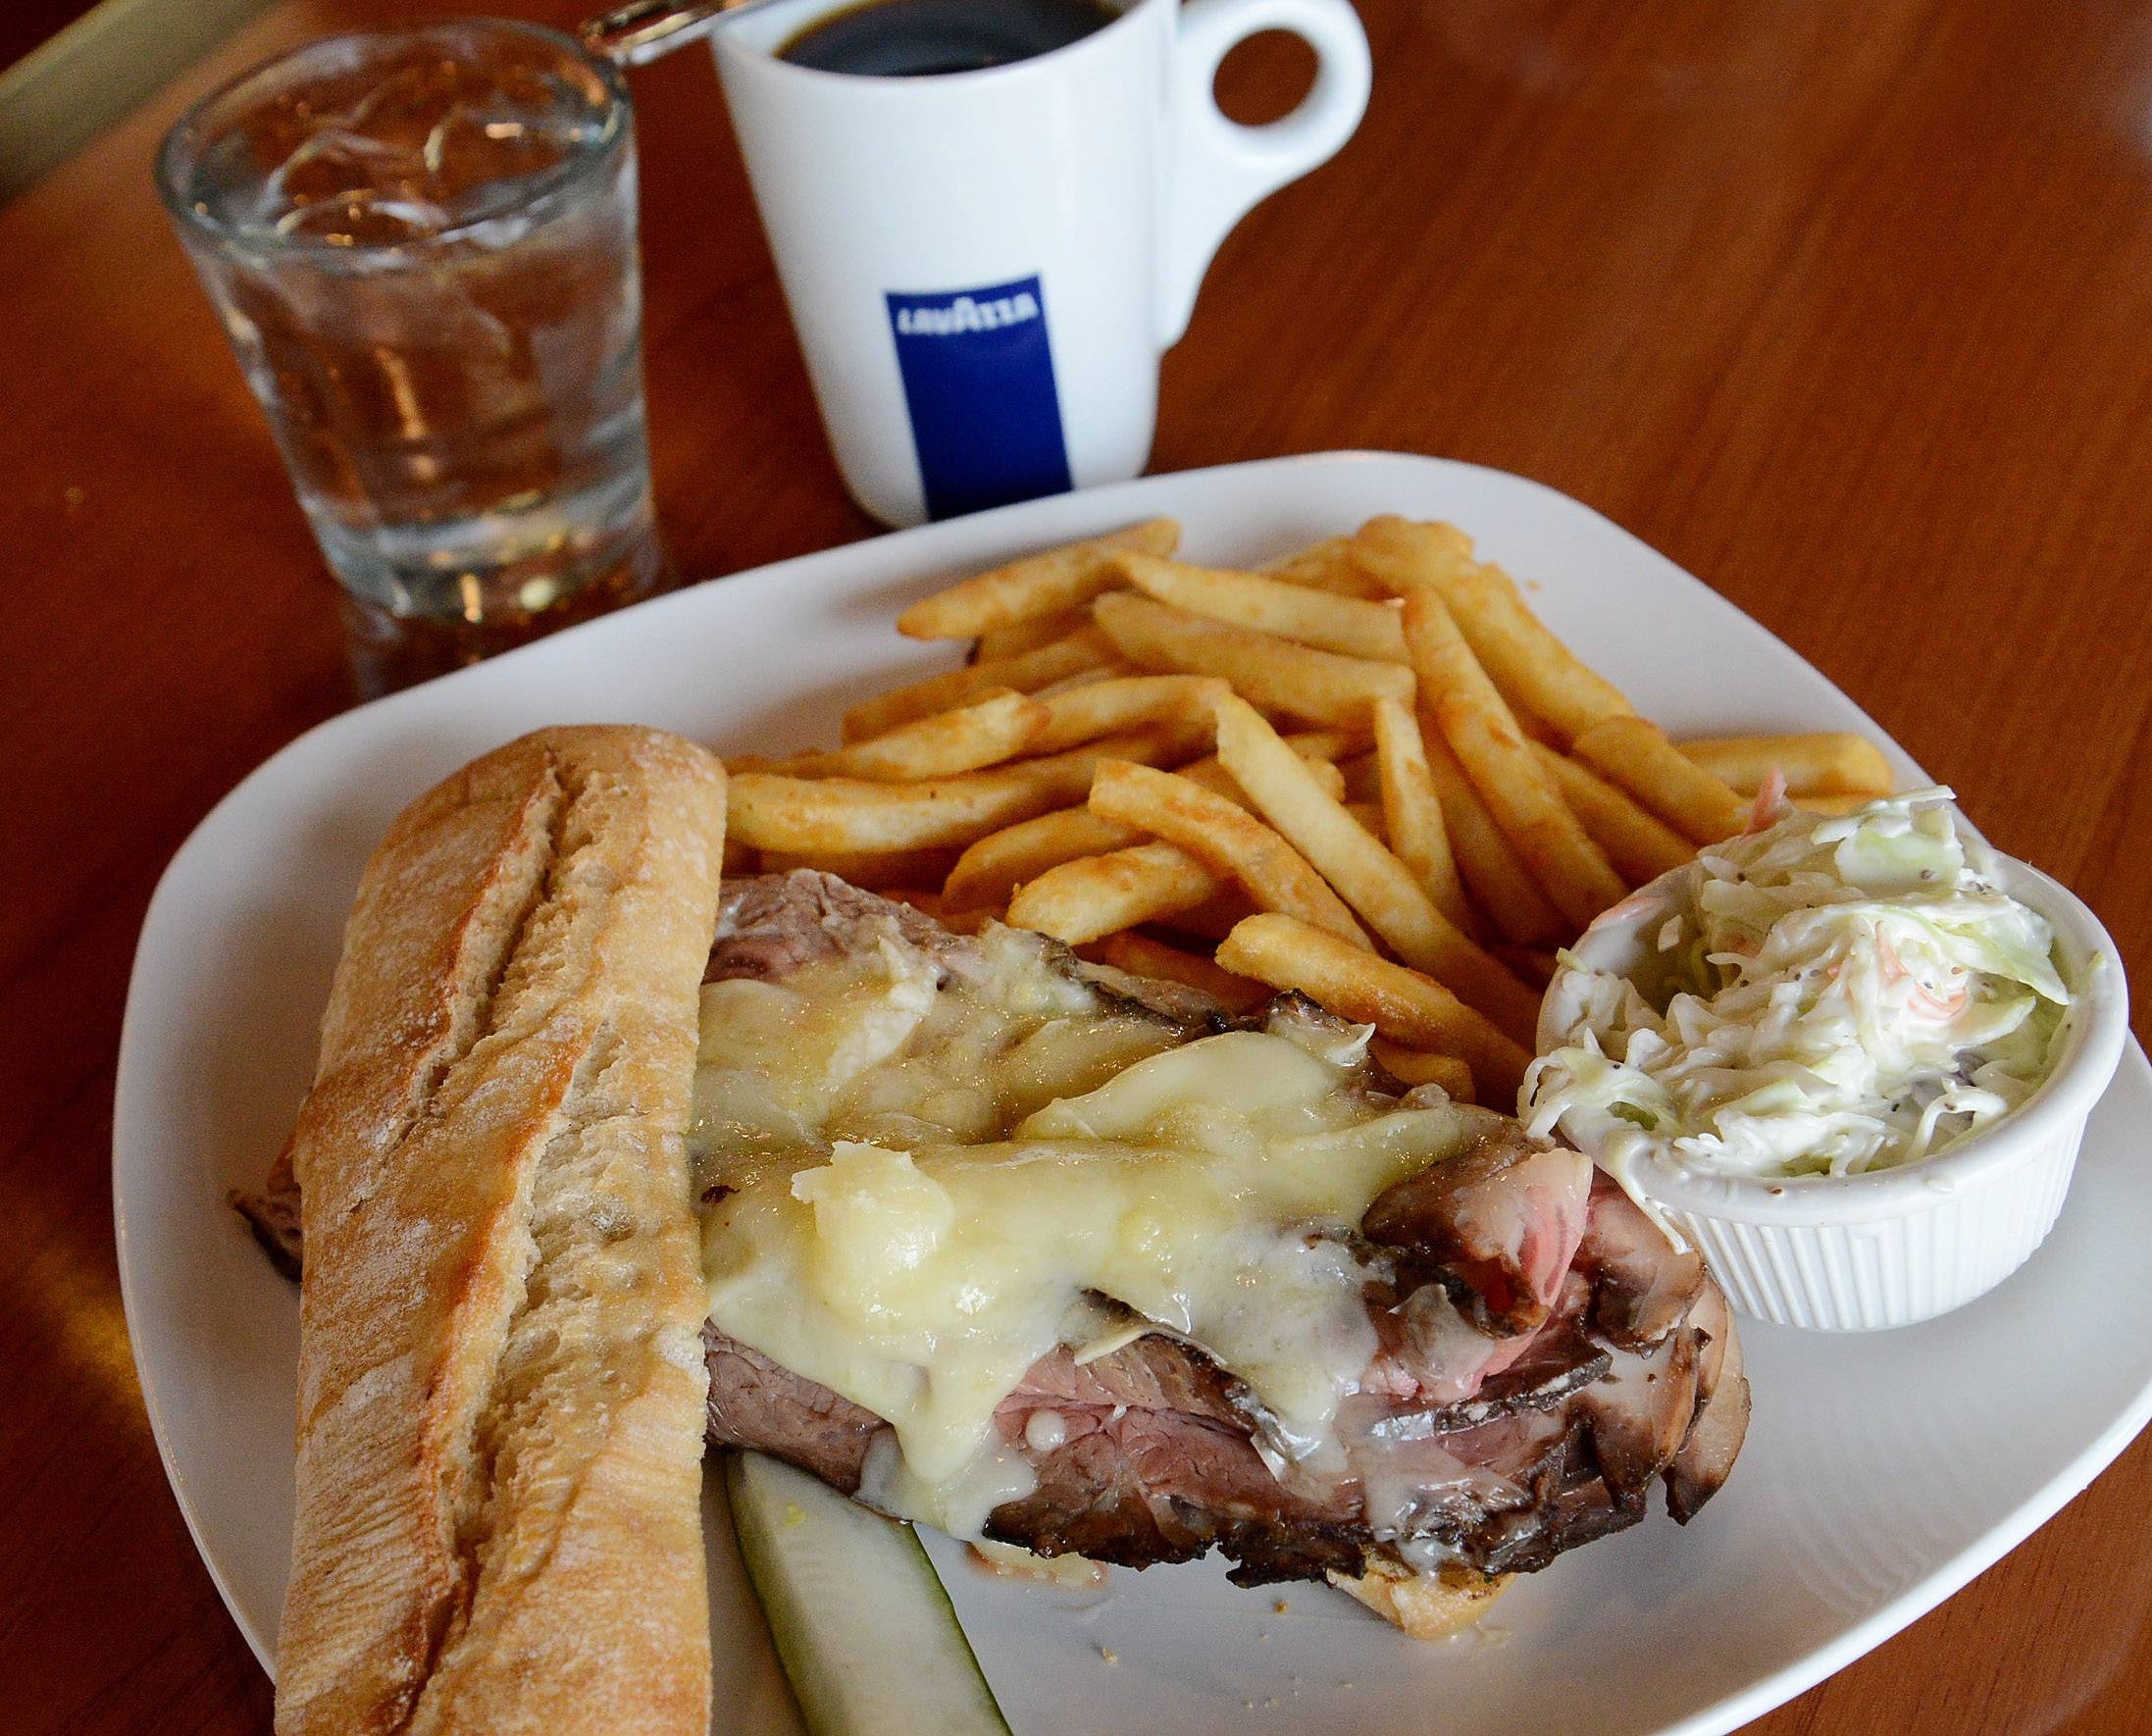 If you feel more like lunch than breakfast, Maple Cafe in Buffalo Grove plates a variety of hearty sandwiches, like the prime rib.